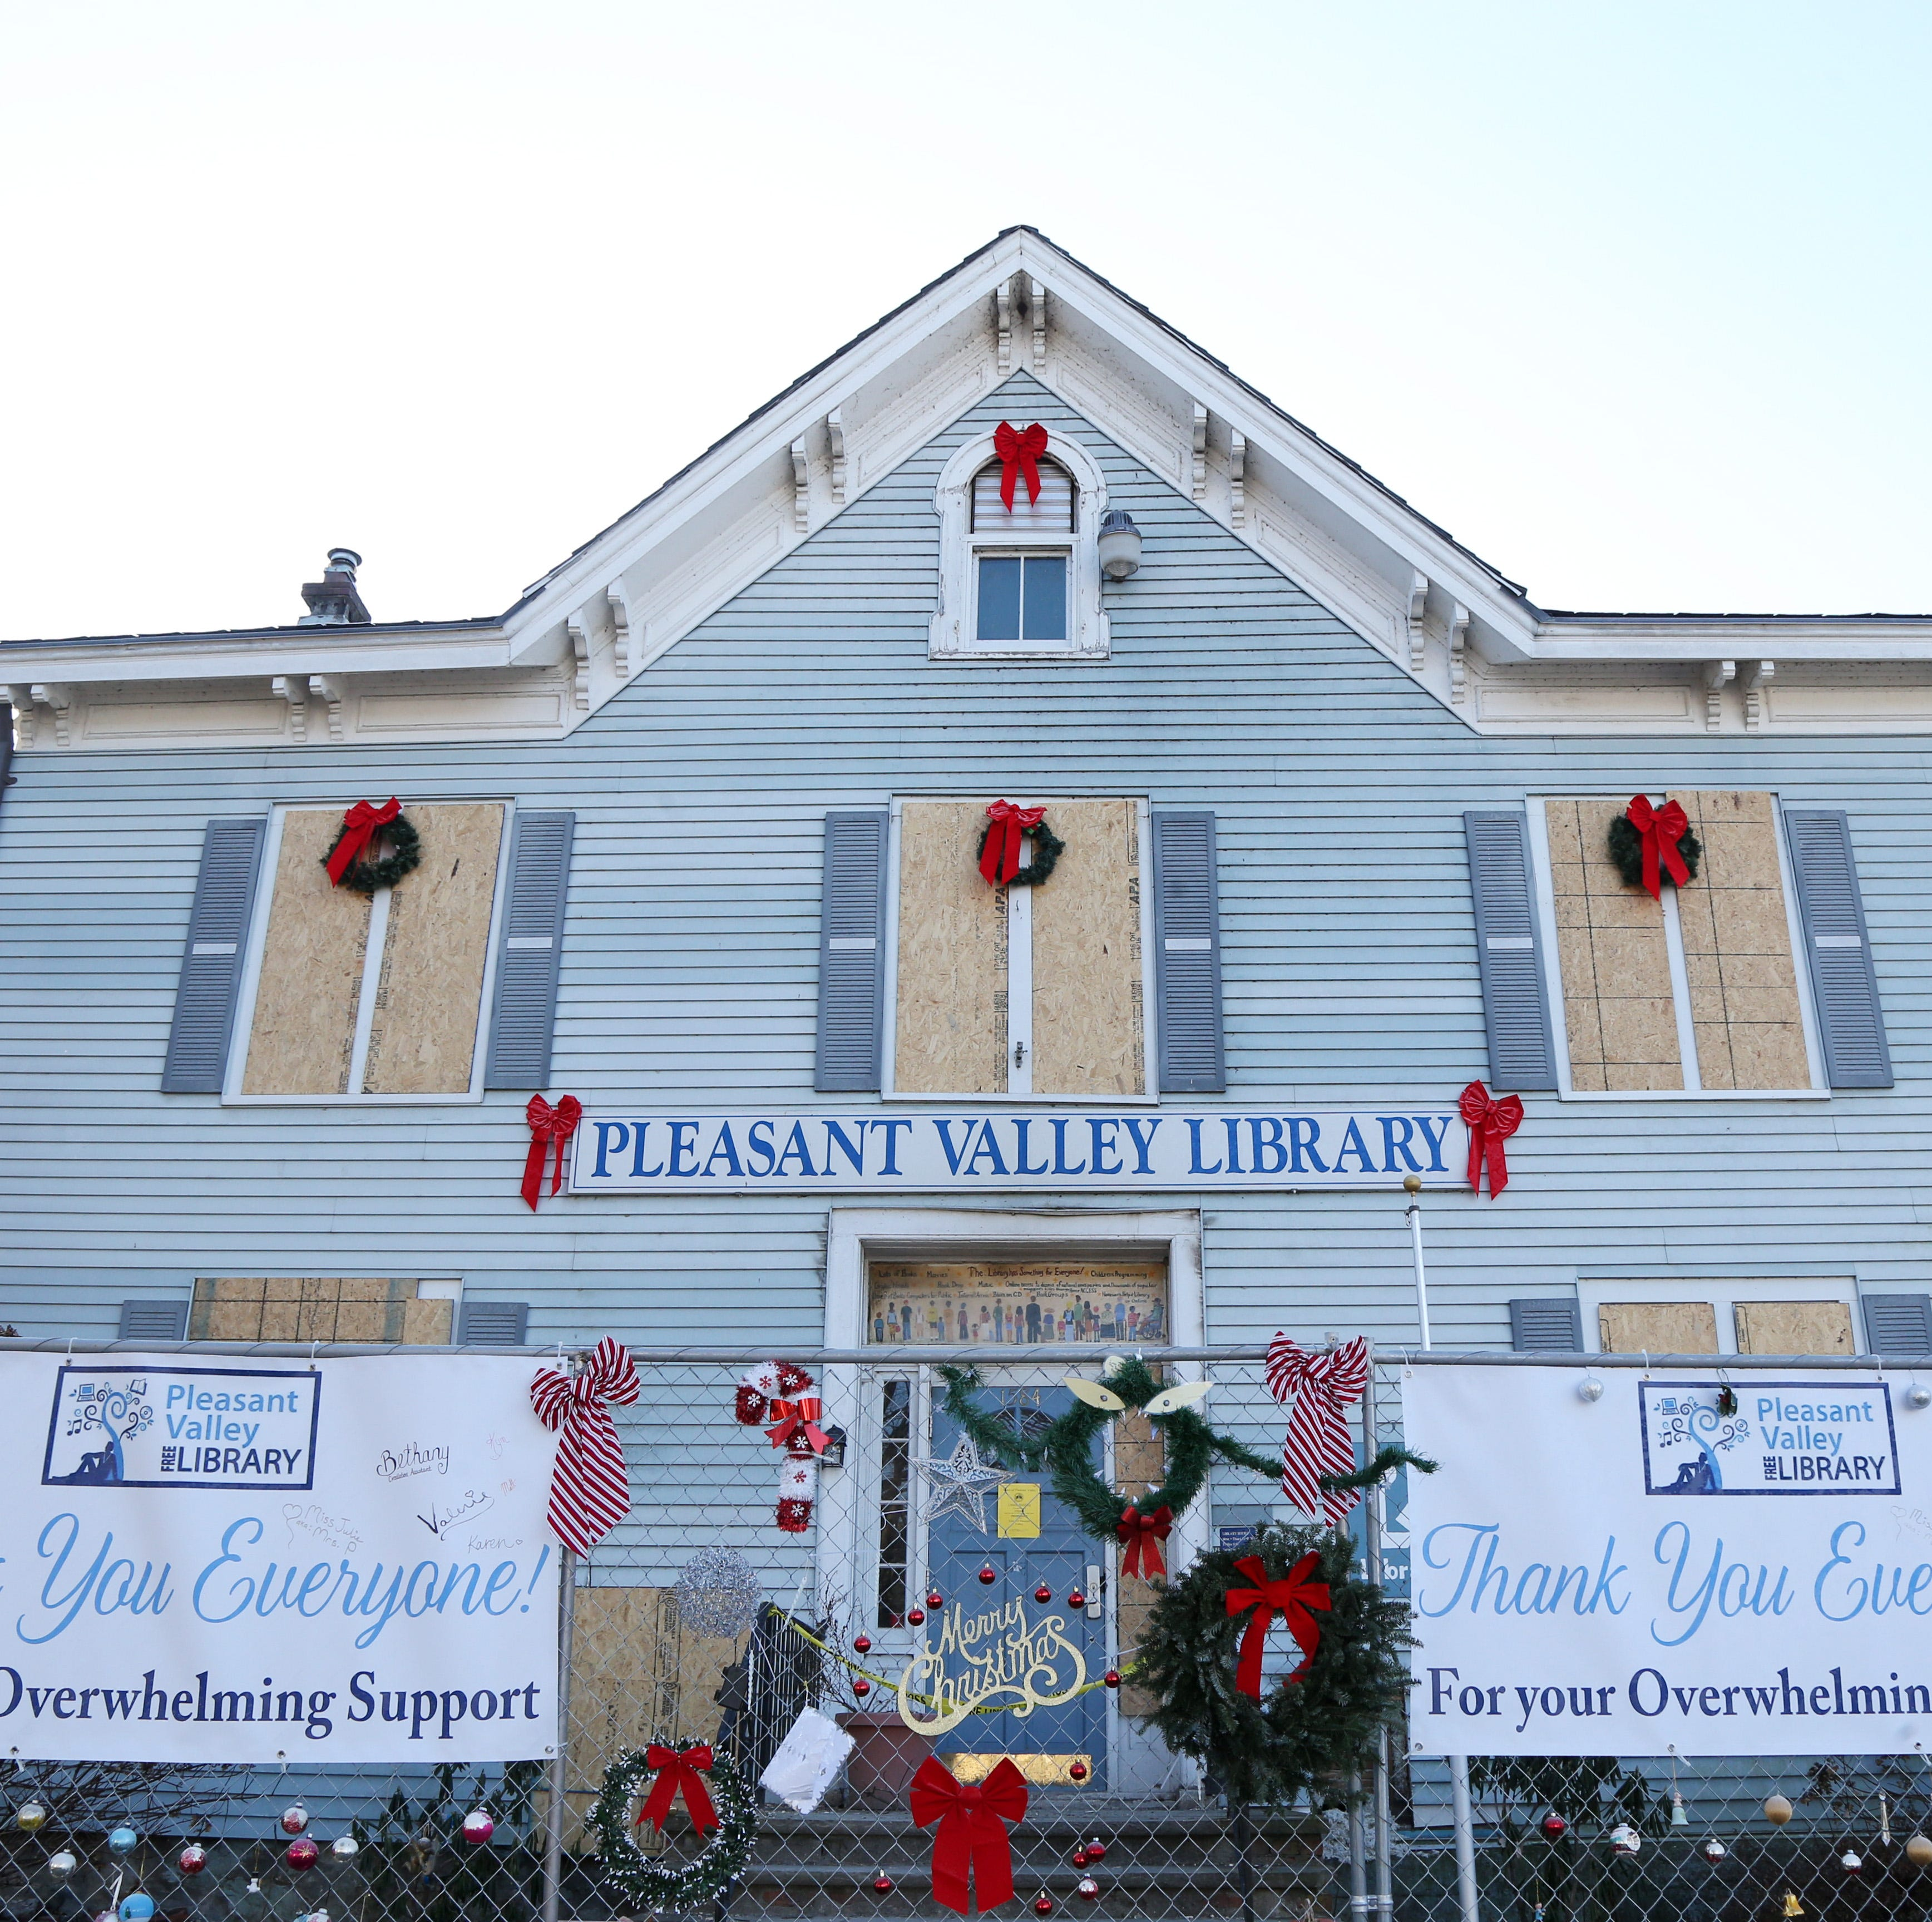 'Rise like a phoenix': Pleasant Valley library lifted by community after fire